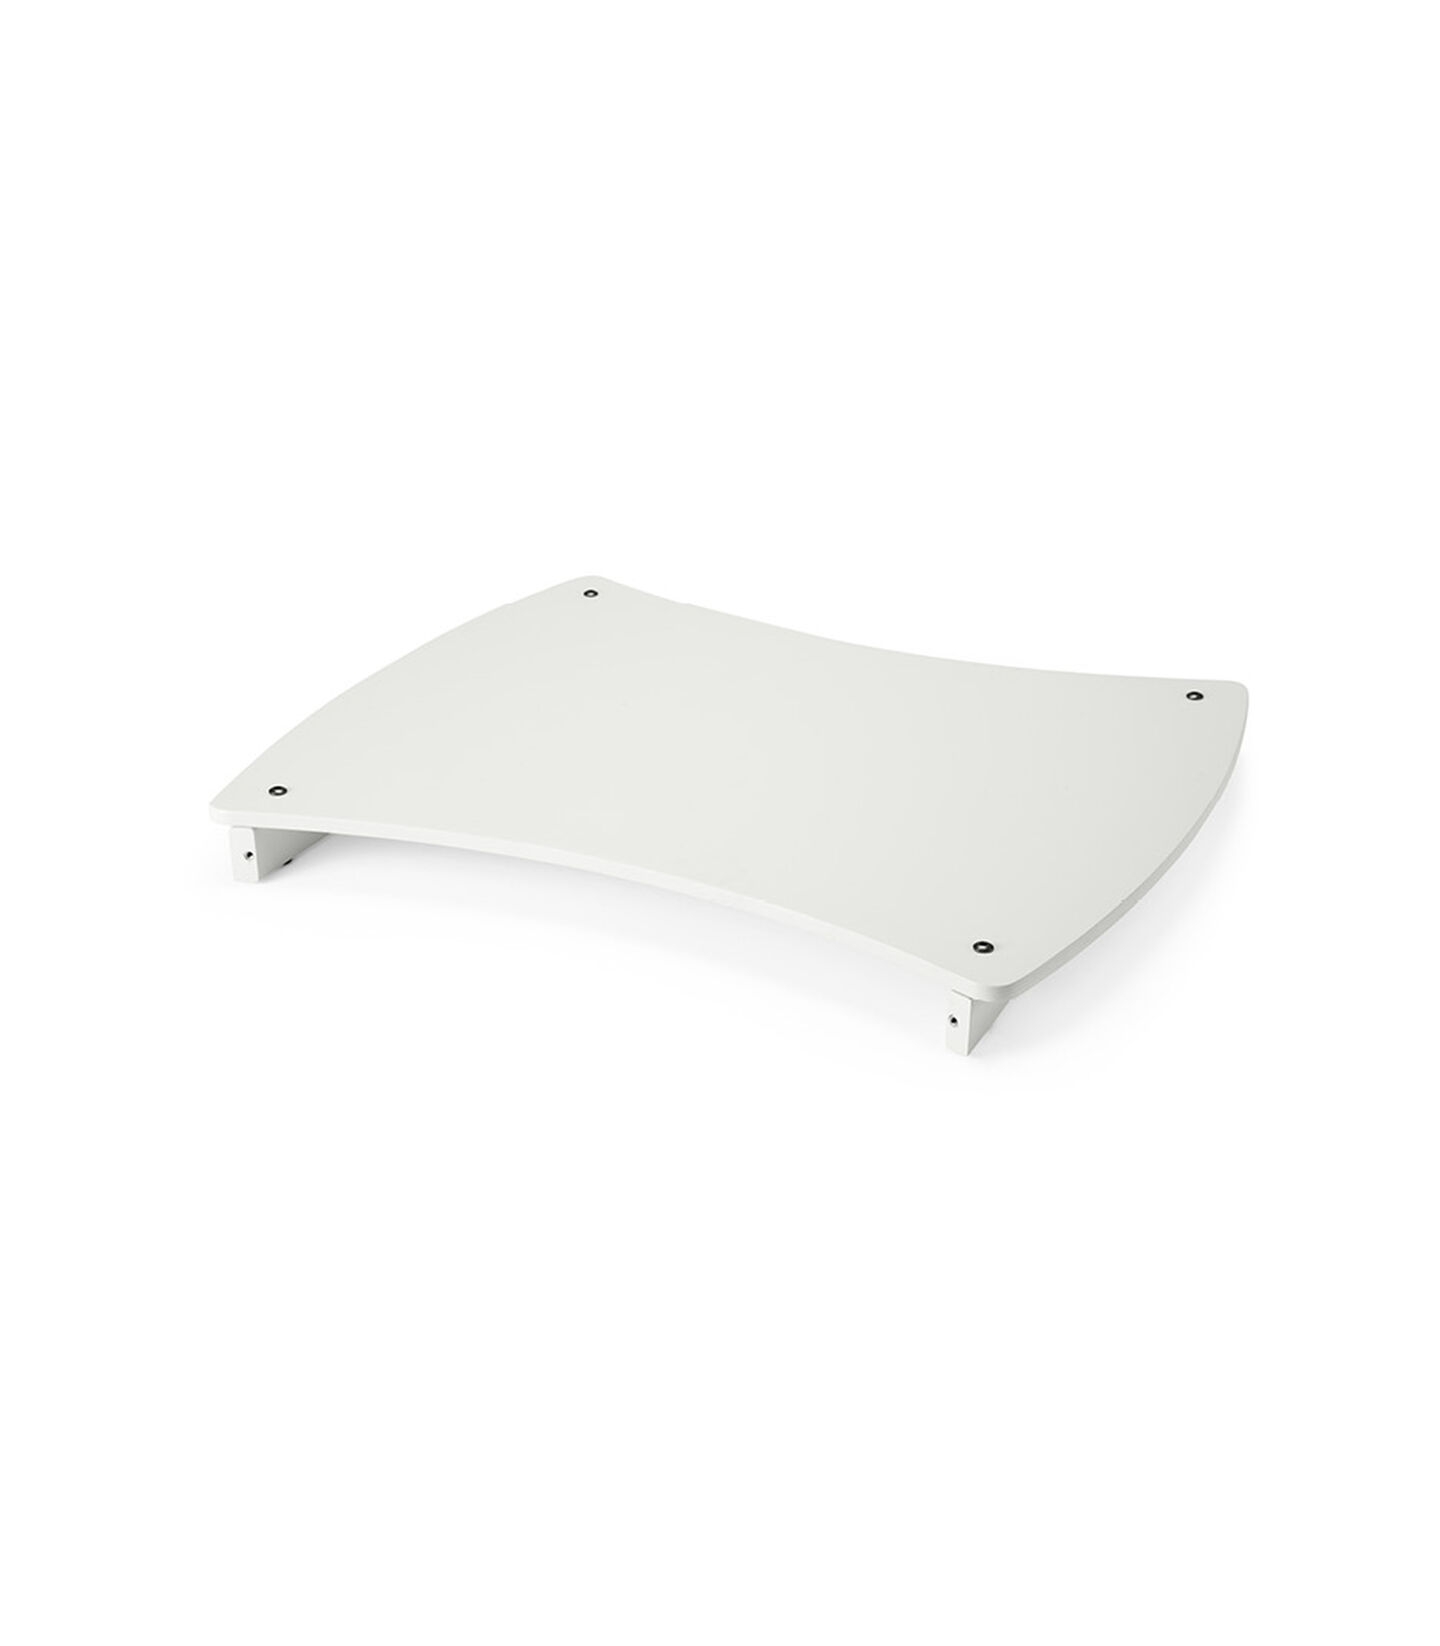 Stokke® Care™ Tablette Supérieure Complete Blanc, Blanc, mainview